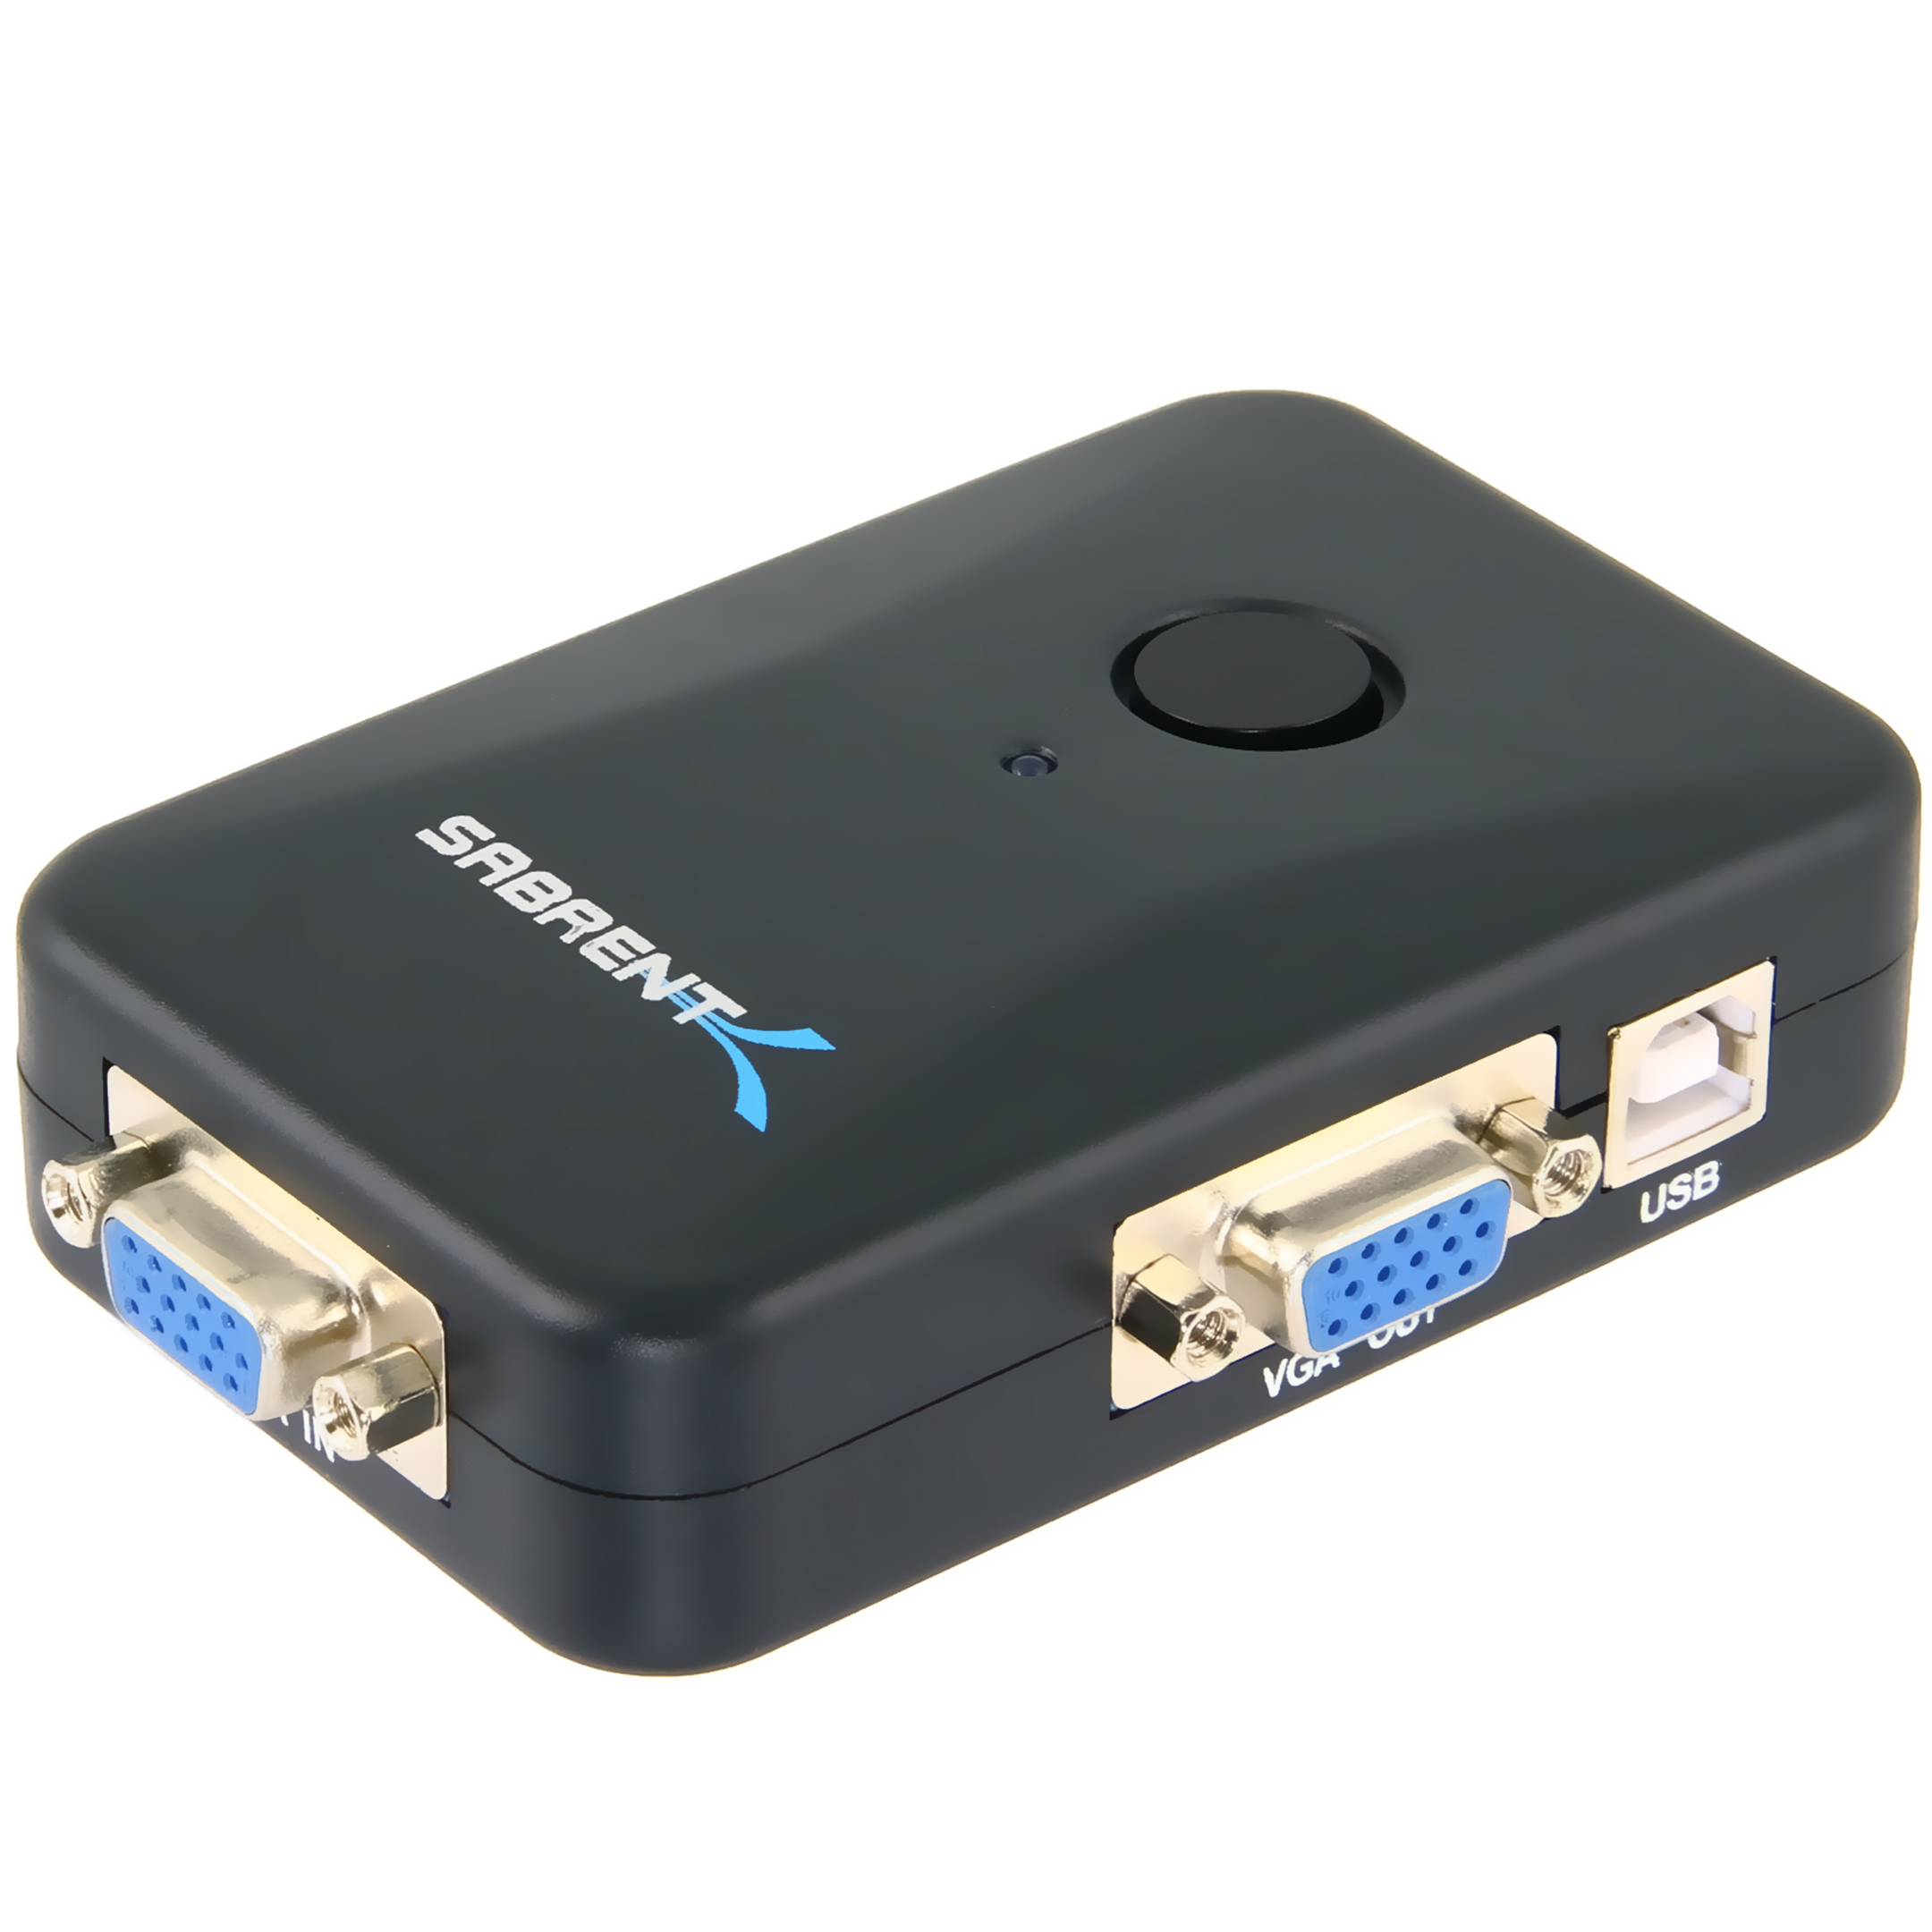 Sabrent VD-VS2P 2-Port VGA High Resolution Video Splitter